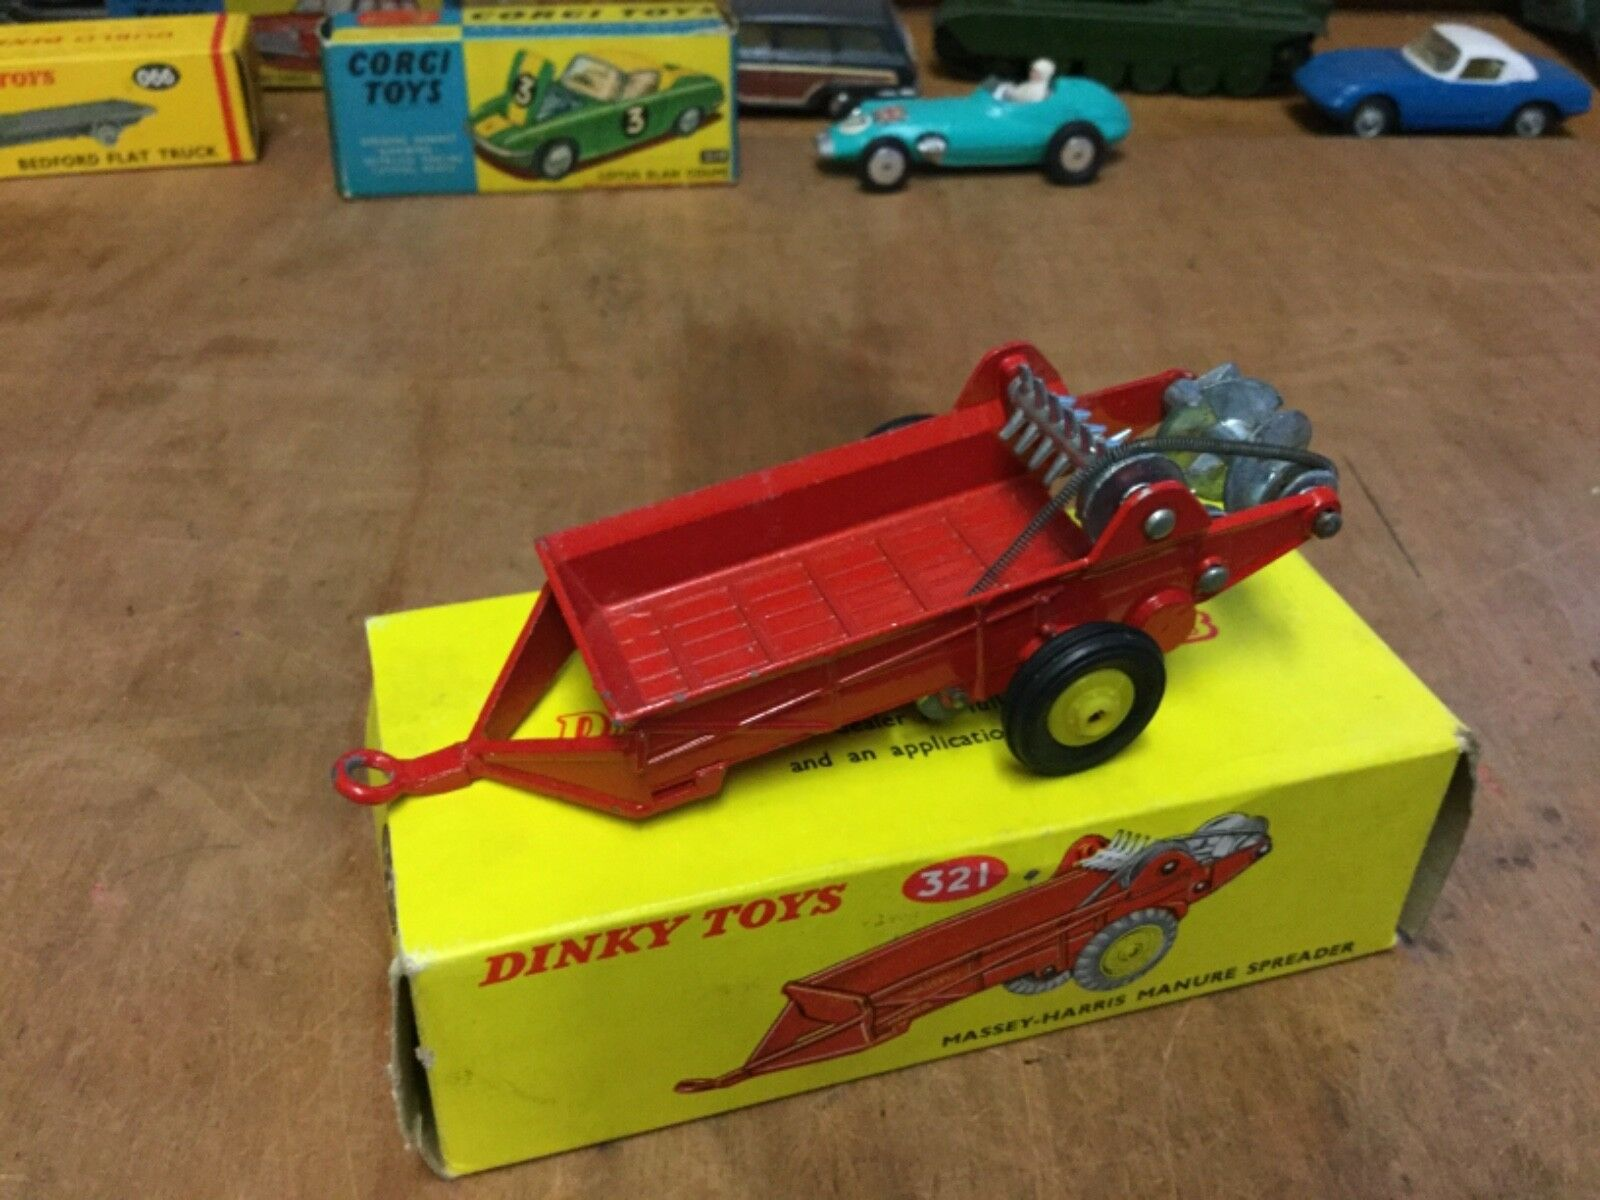 BOXED DINKY 321MASSEY-HARRIS MANURE SPREADER